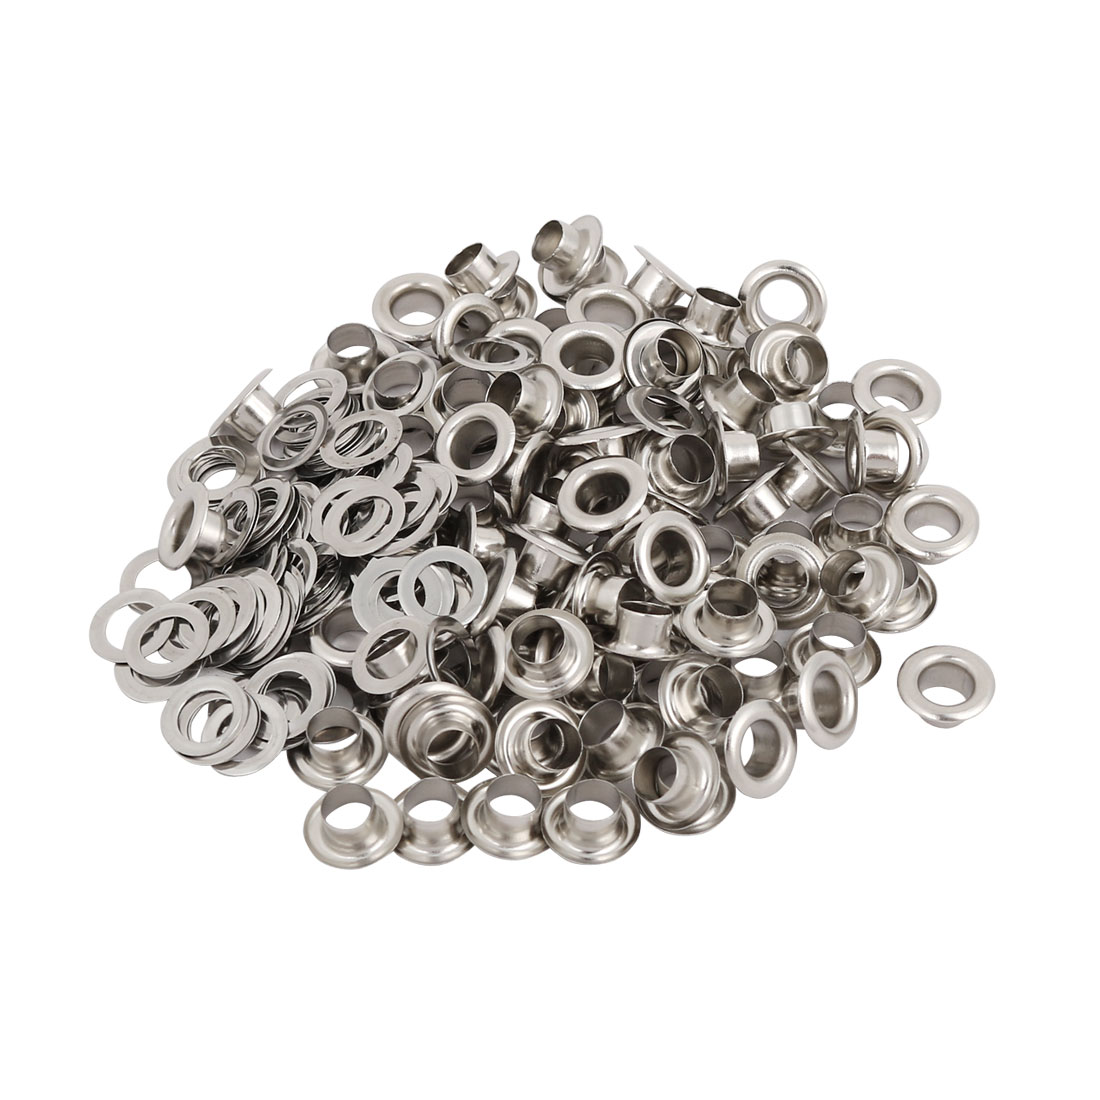 100pcs 4.5mm Iron Eyelet Grommets Silver Tone w Washers for Clothes Leather - image 3 de 3